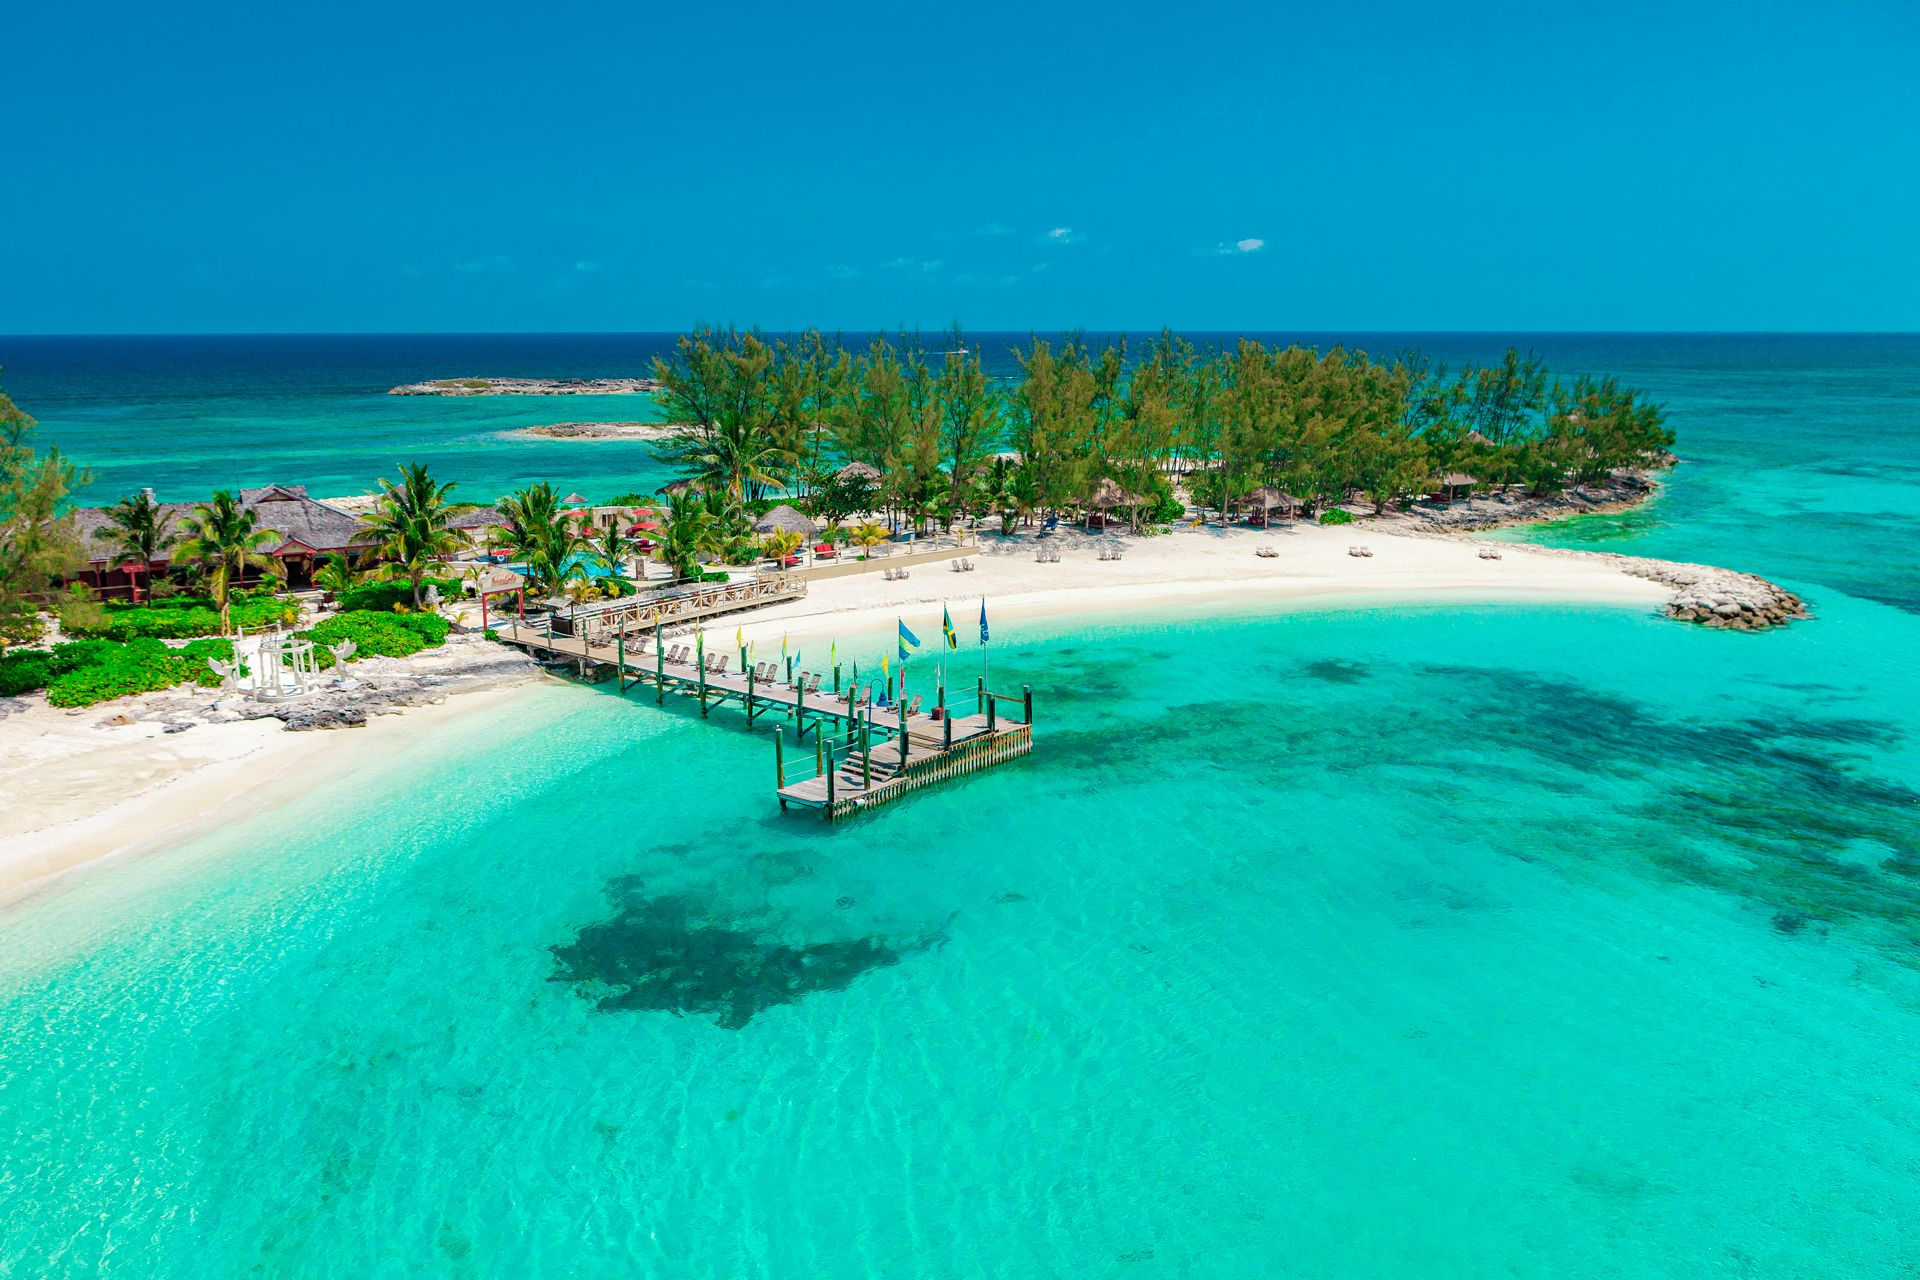 Sandals Royal Bahamian Private Island